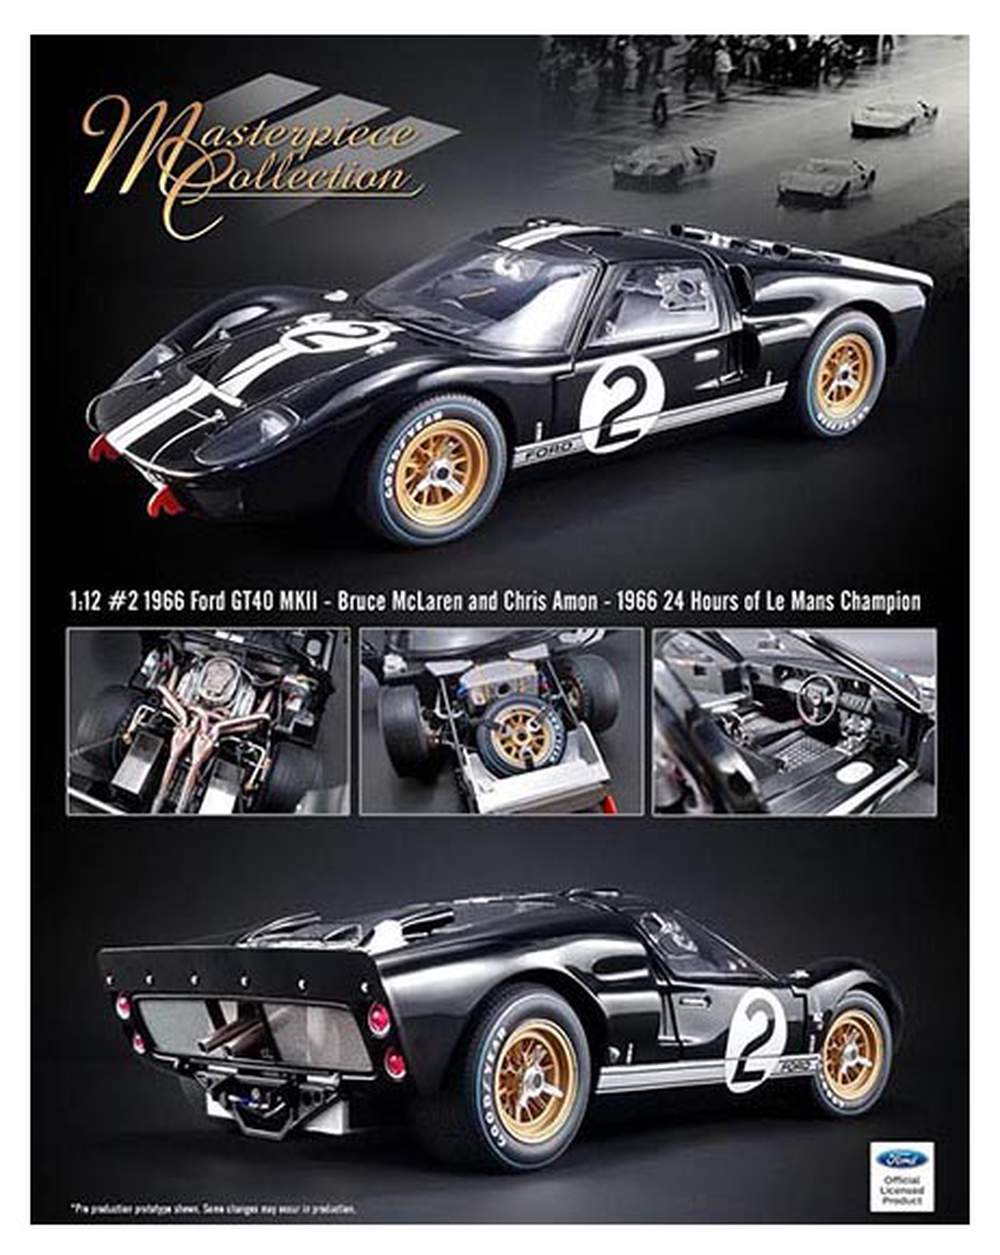 """1:12 1966 Ford GT-40 MKII - 1966 24 Hours of Le Mans Champion """"Bruce McLaren & Chris Amon"""""""